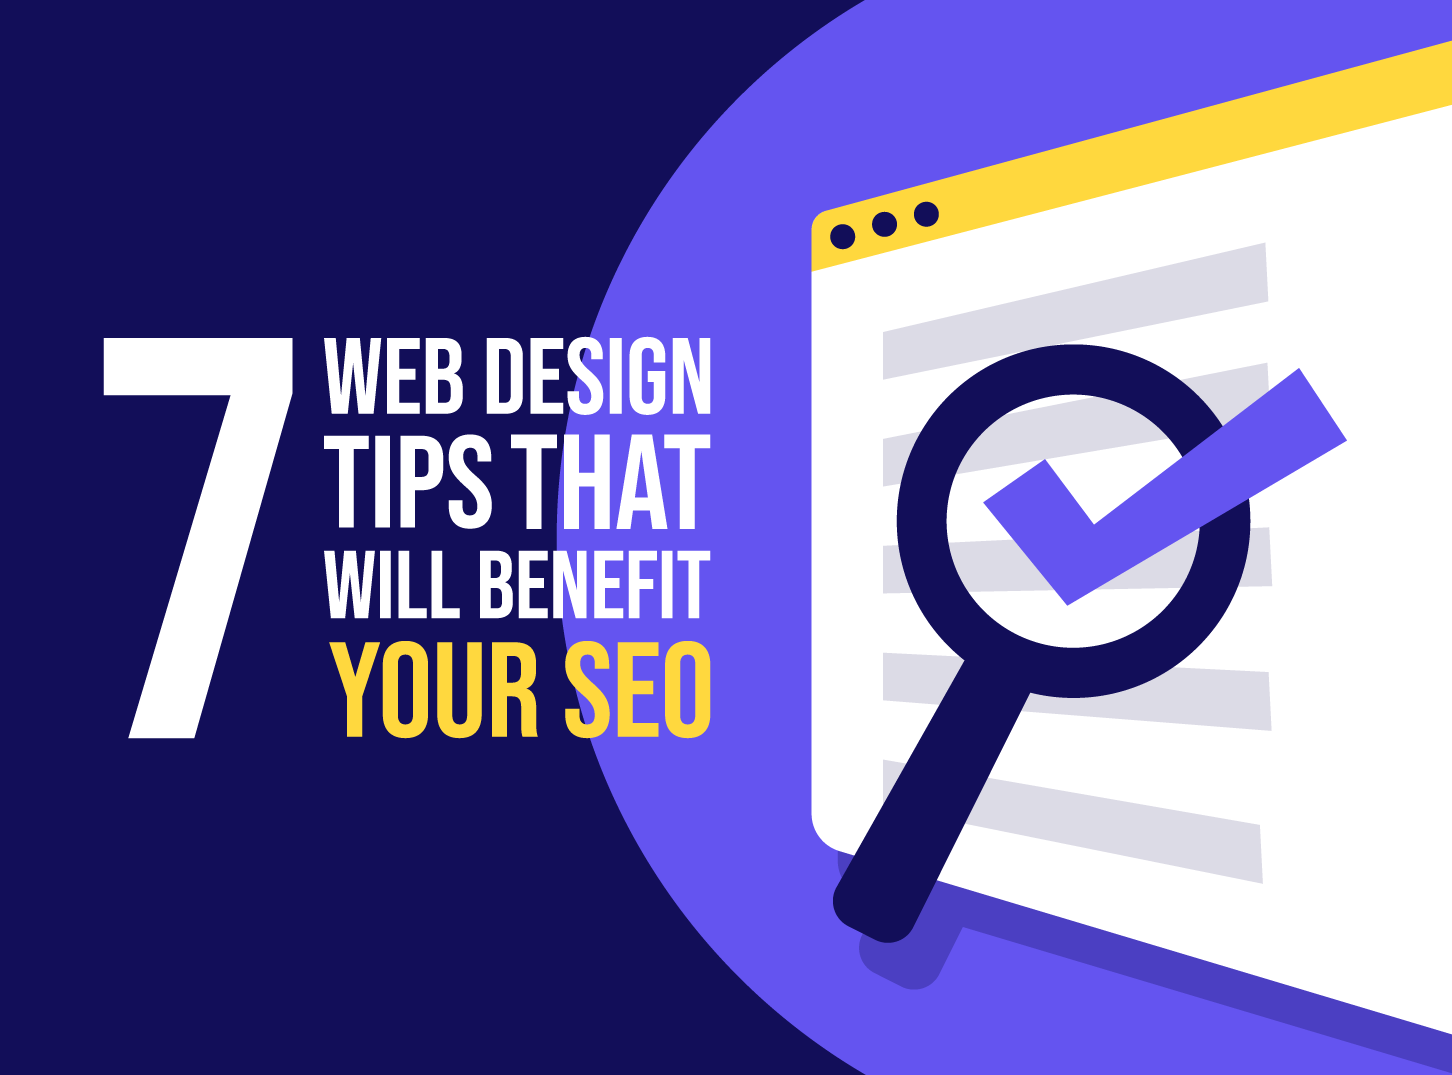 7 Web Design Tips for Better SEO